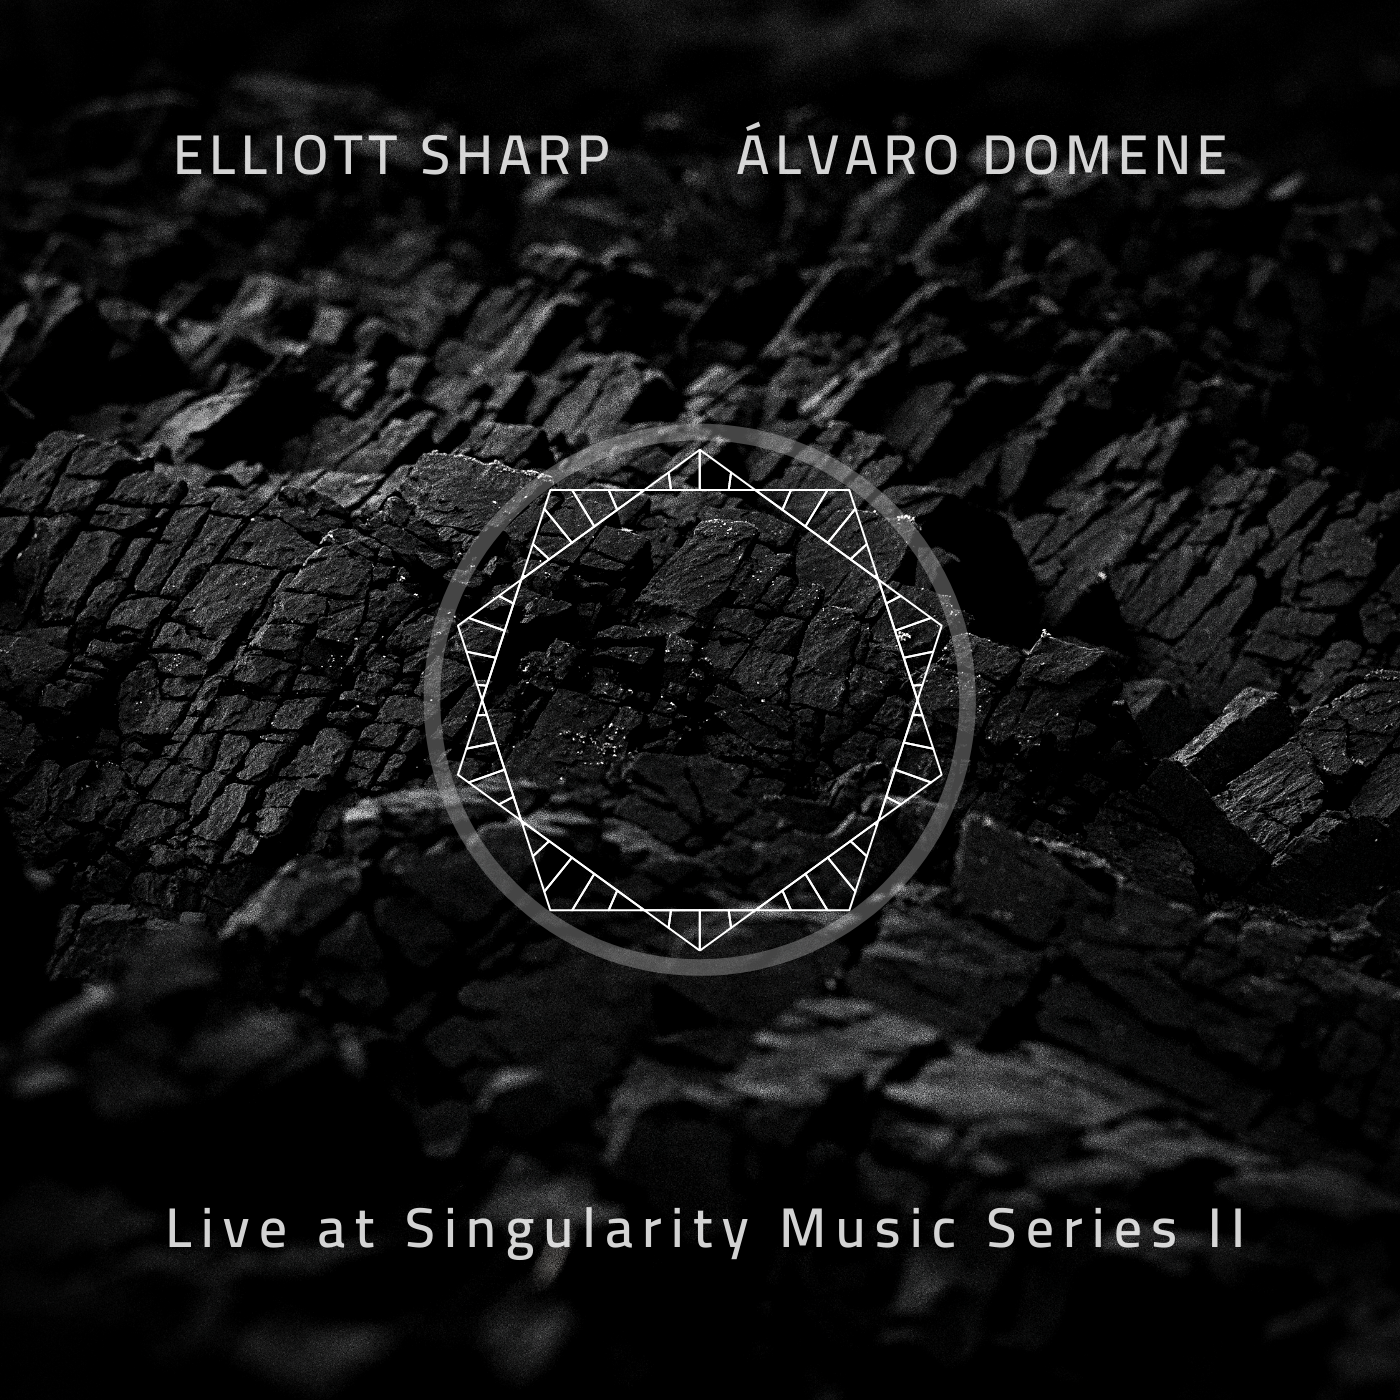 Live at Singularity Music Series II by Elliott Sharp & Álvaro Domene